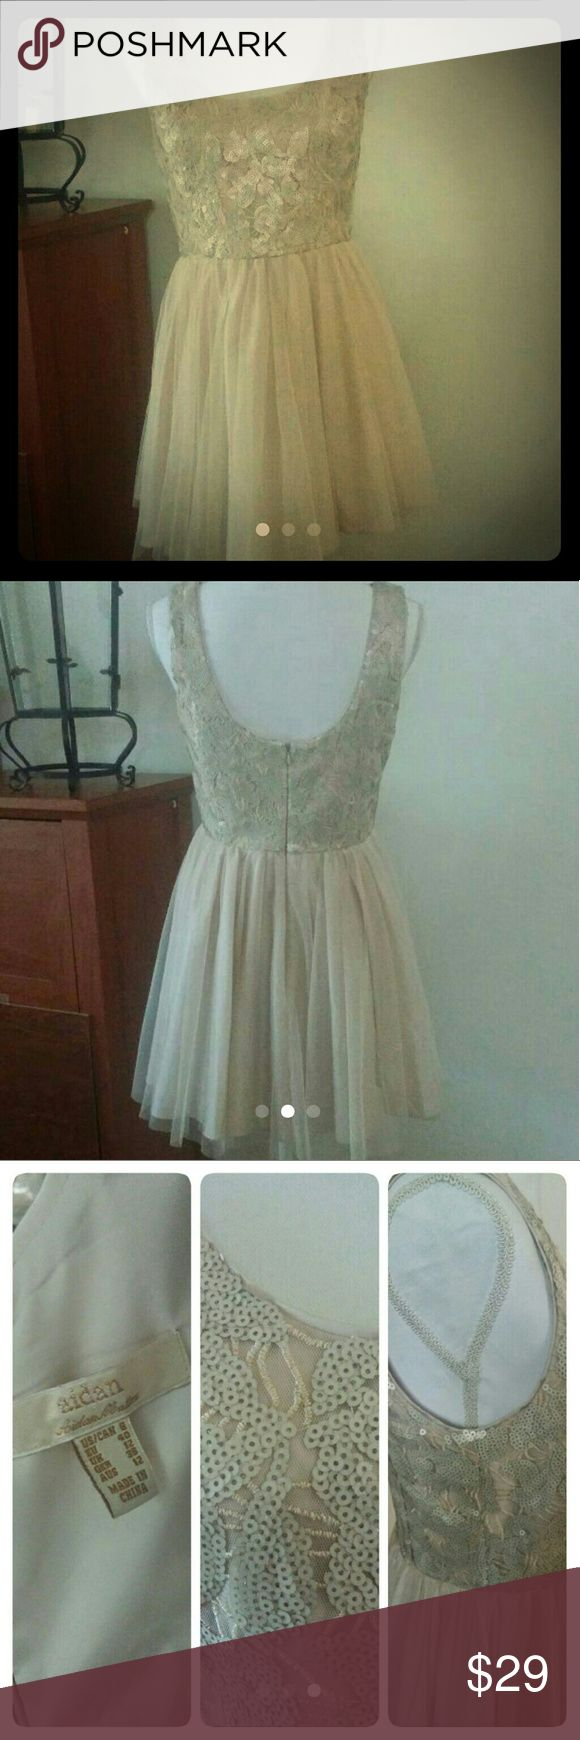 AIDAN MATTOX, Sleeveless Beige Party Dress Gently Pre owned.  Perfect for Prom or any Festive Occasion. Beautifully sequined and skirt is Soft not Stiff. * missing fabric tag. Aidan Mattox Dresses